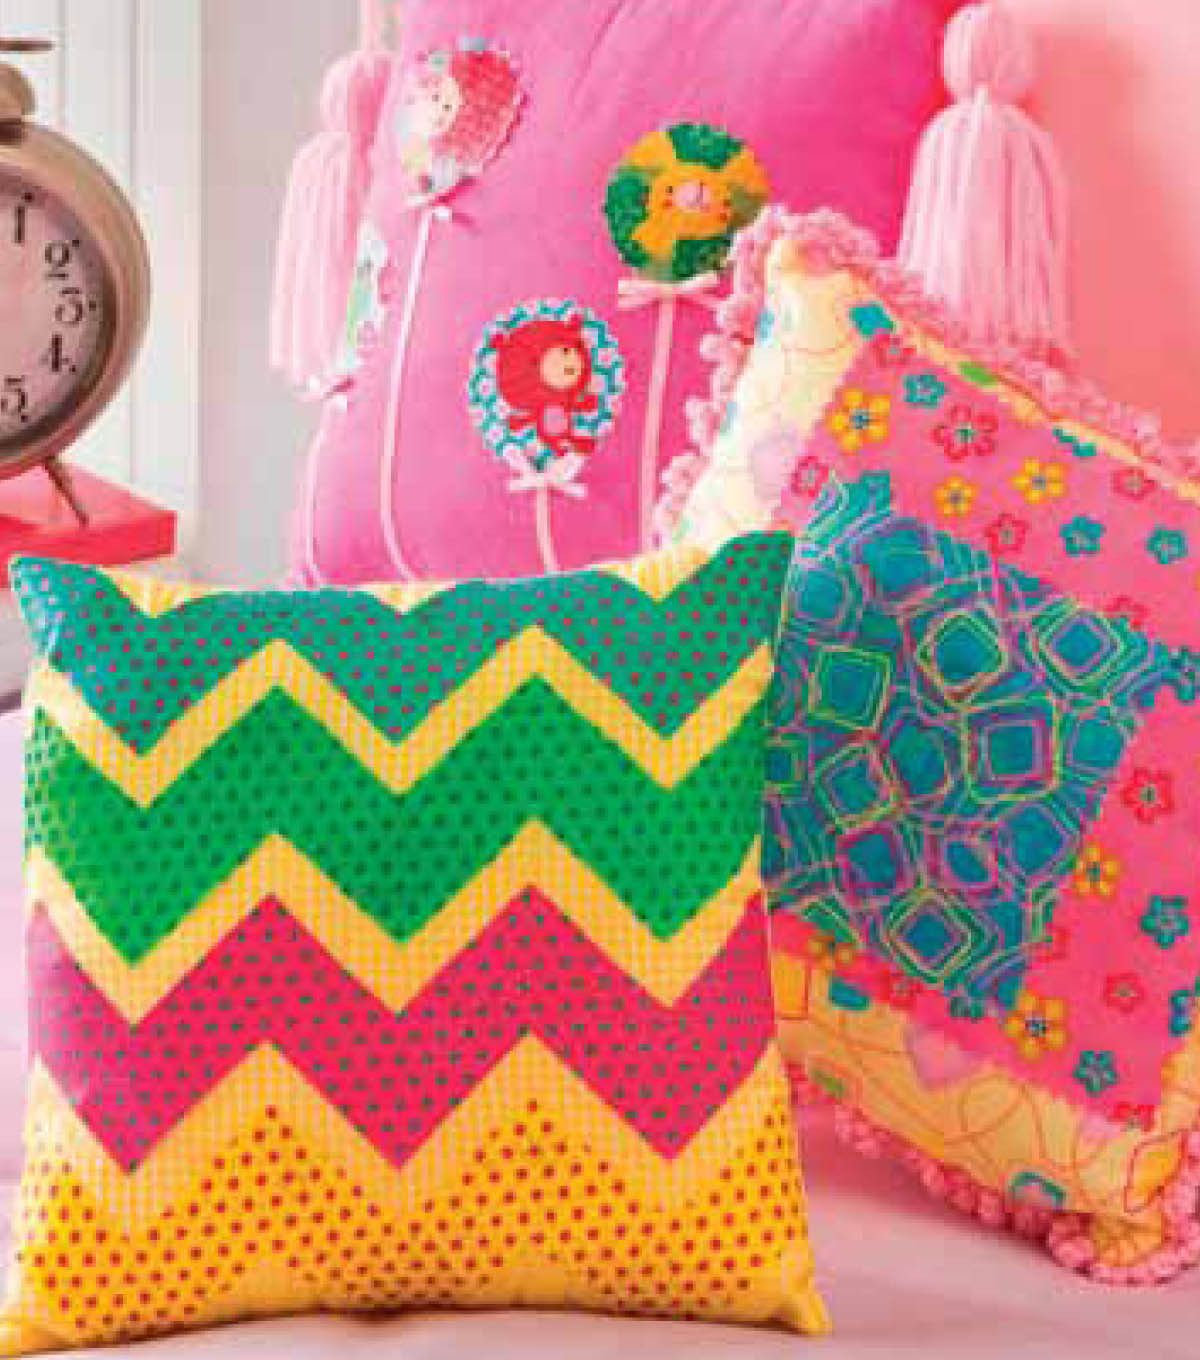 Brighten up your room with these fun #applique pillows!